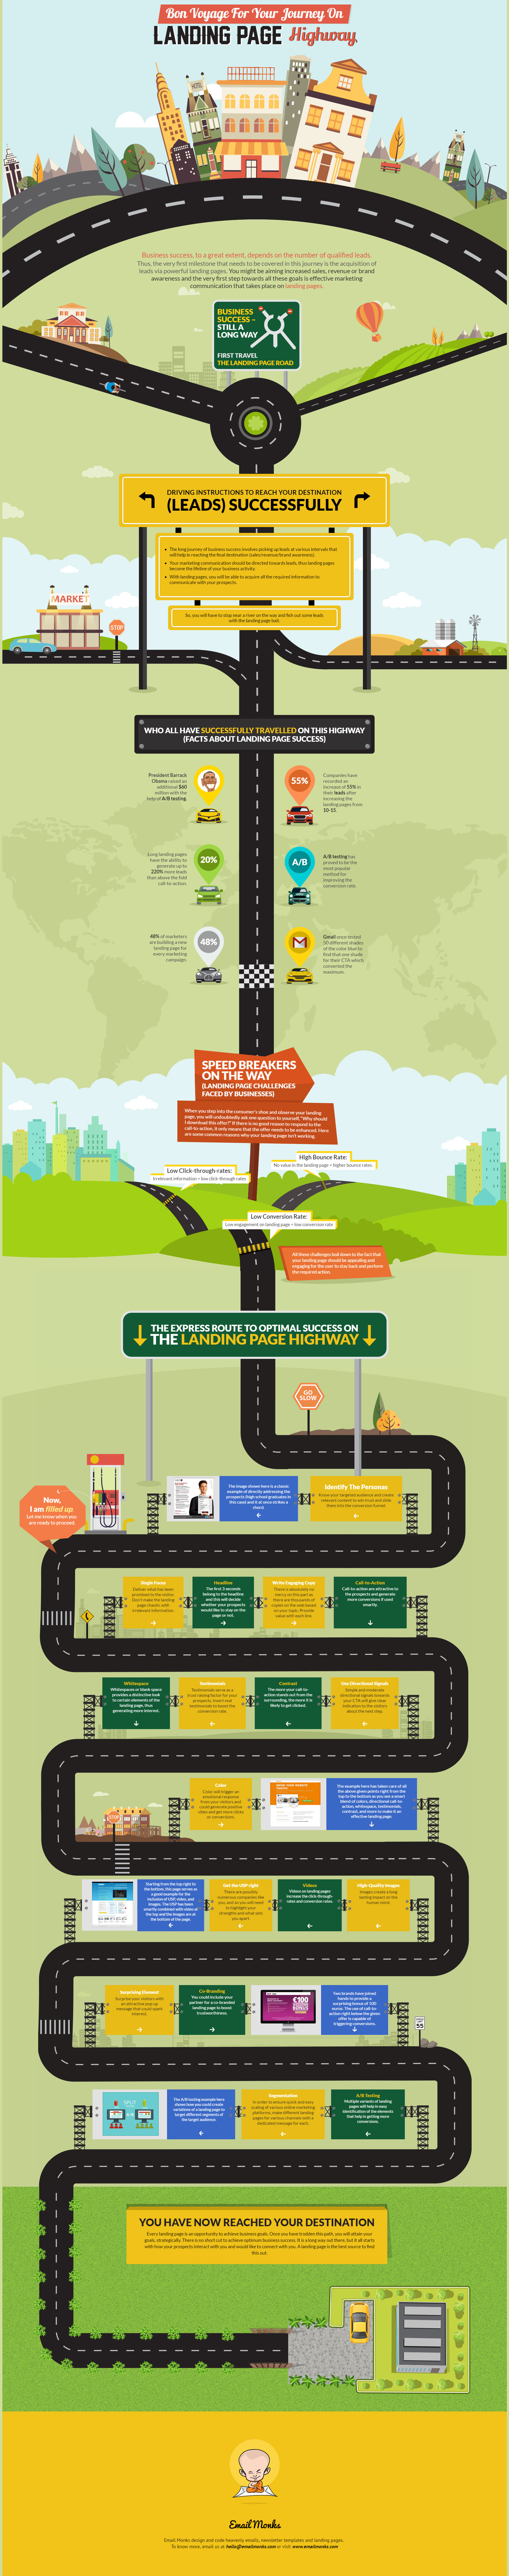 landing page infographic-email monks